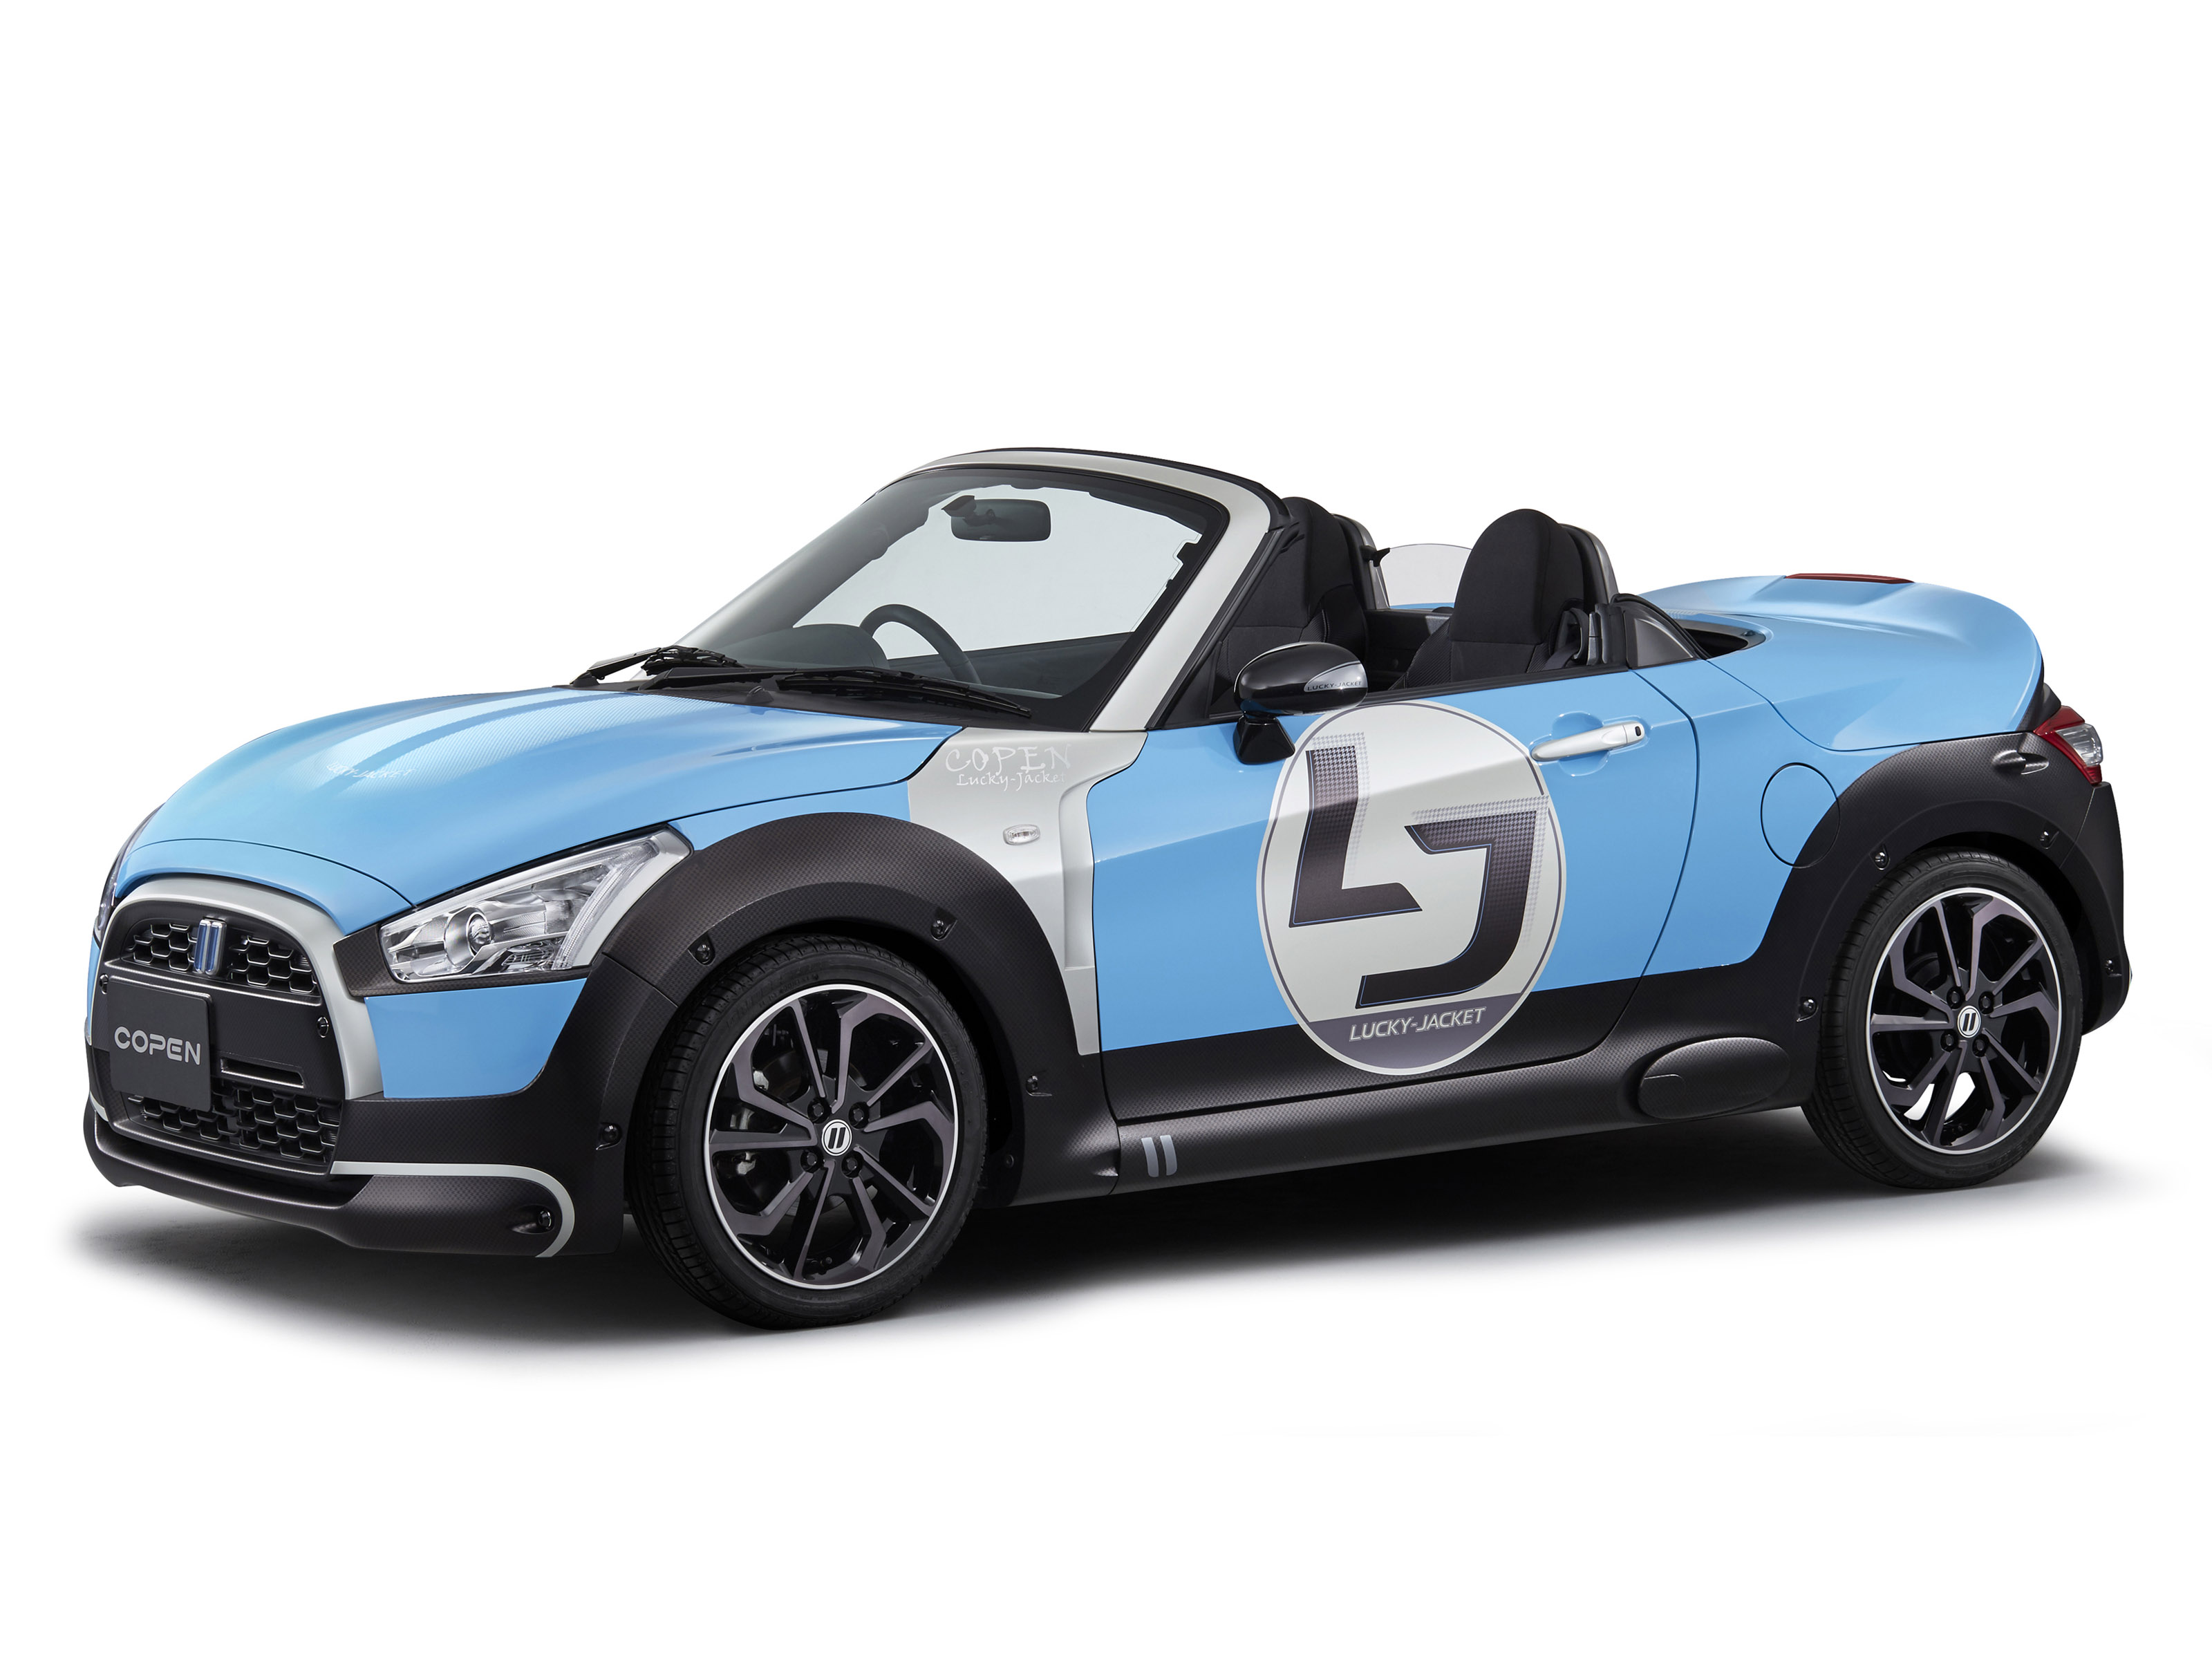 2015 Daihatsu Copen Pictures Information And Specs